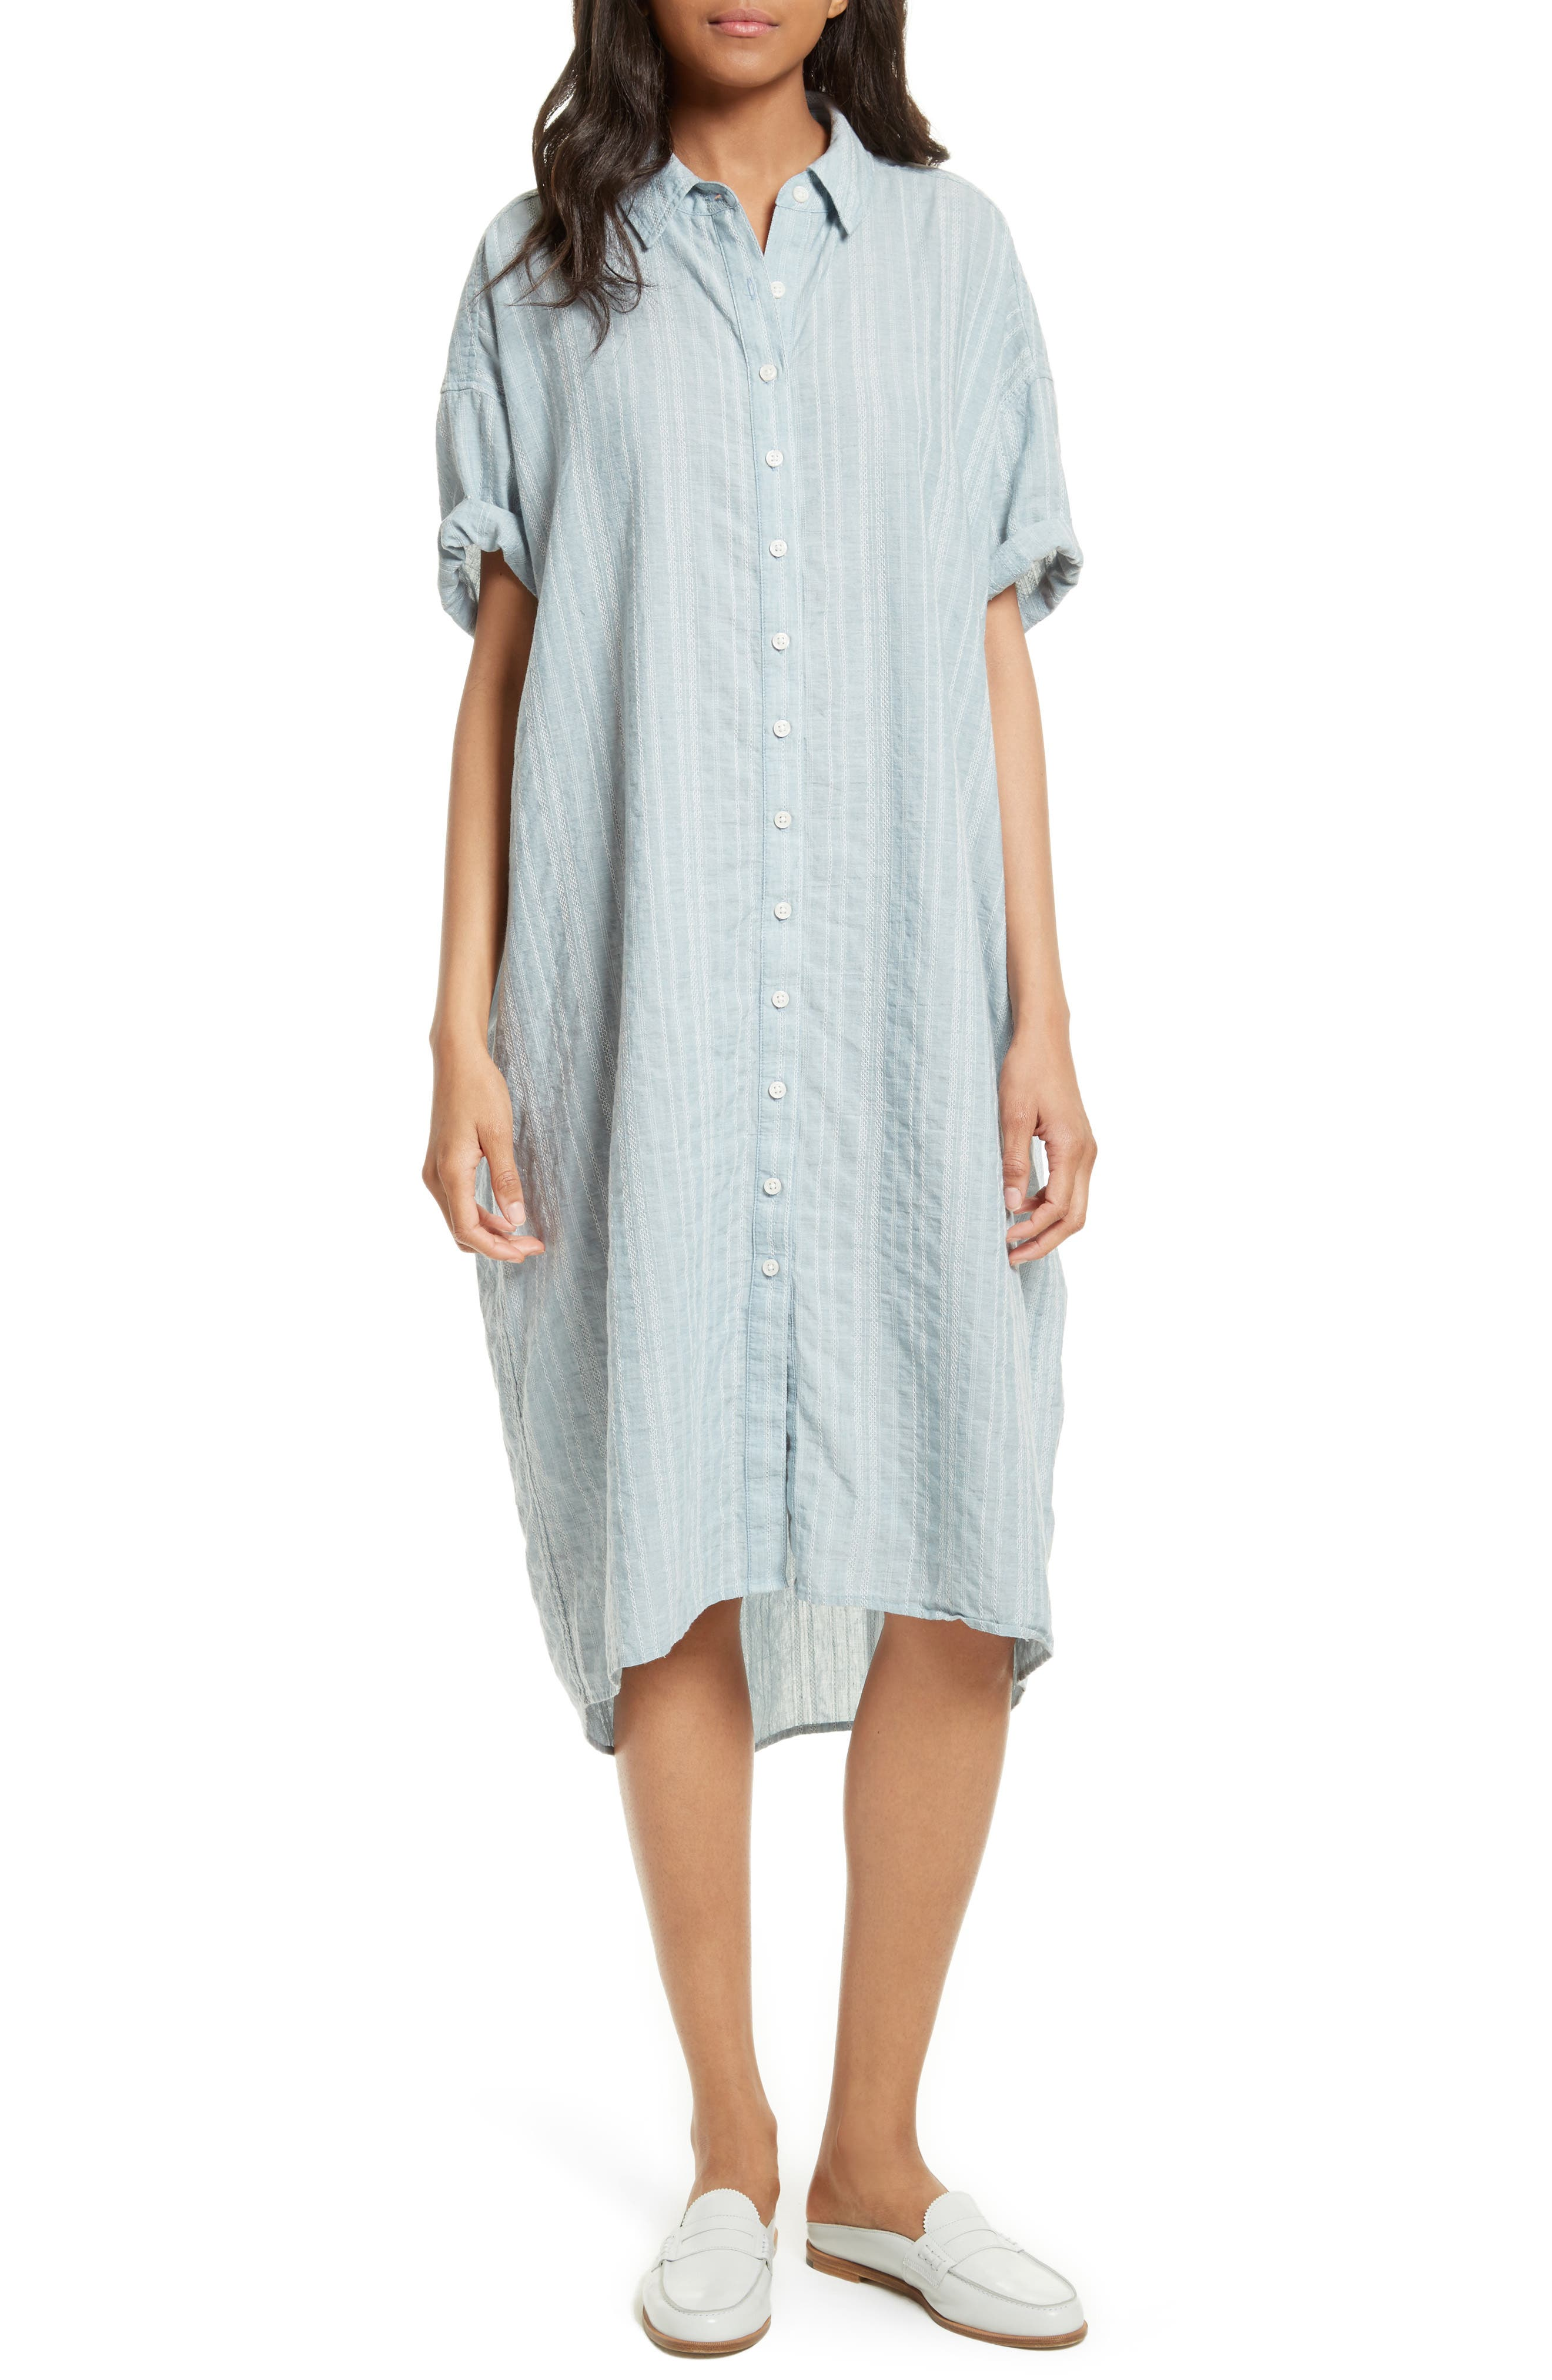 THE GREAT. The Camper Shirtdress